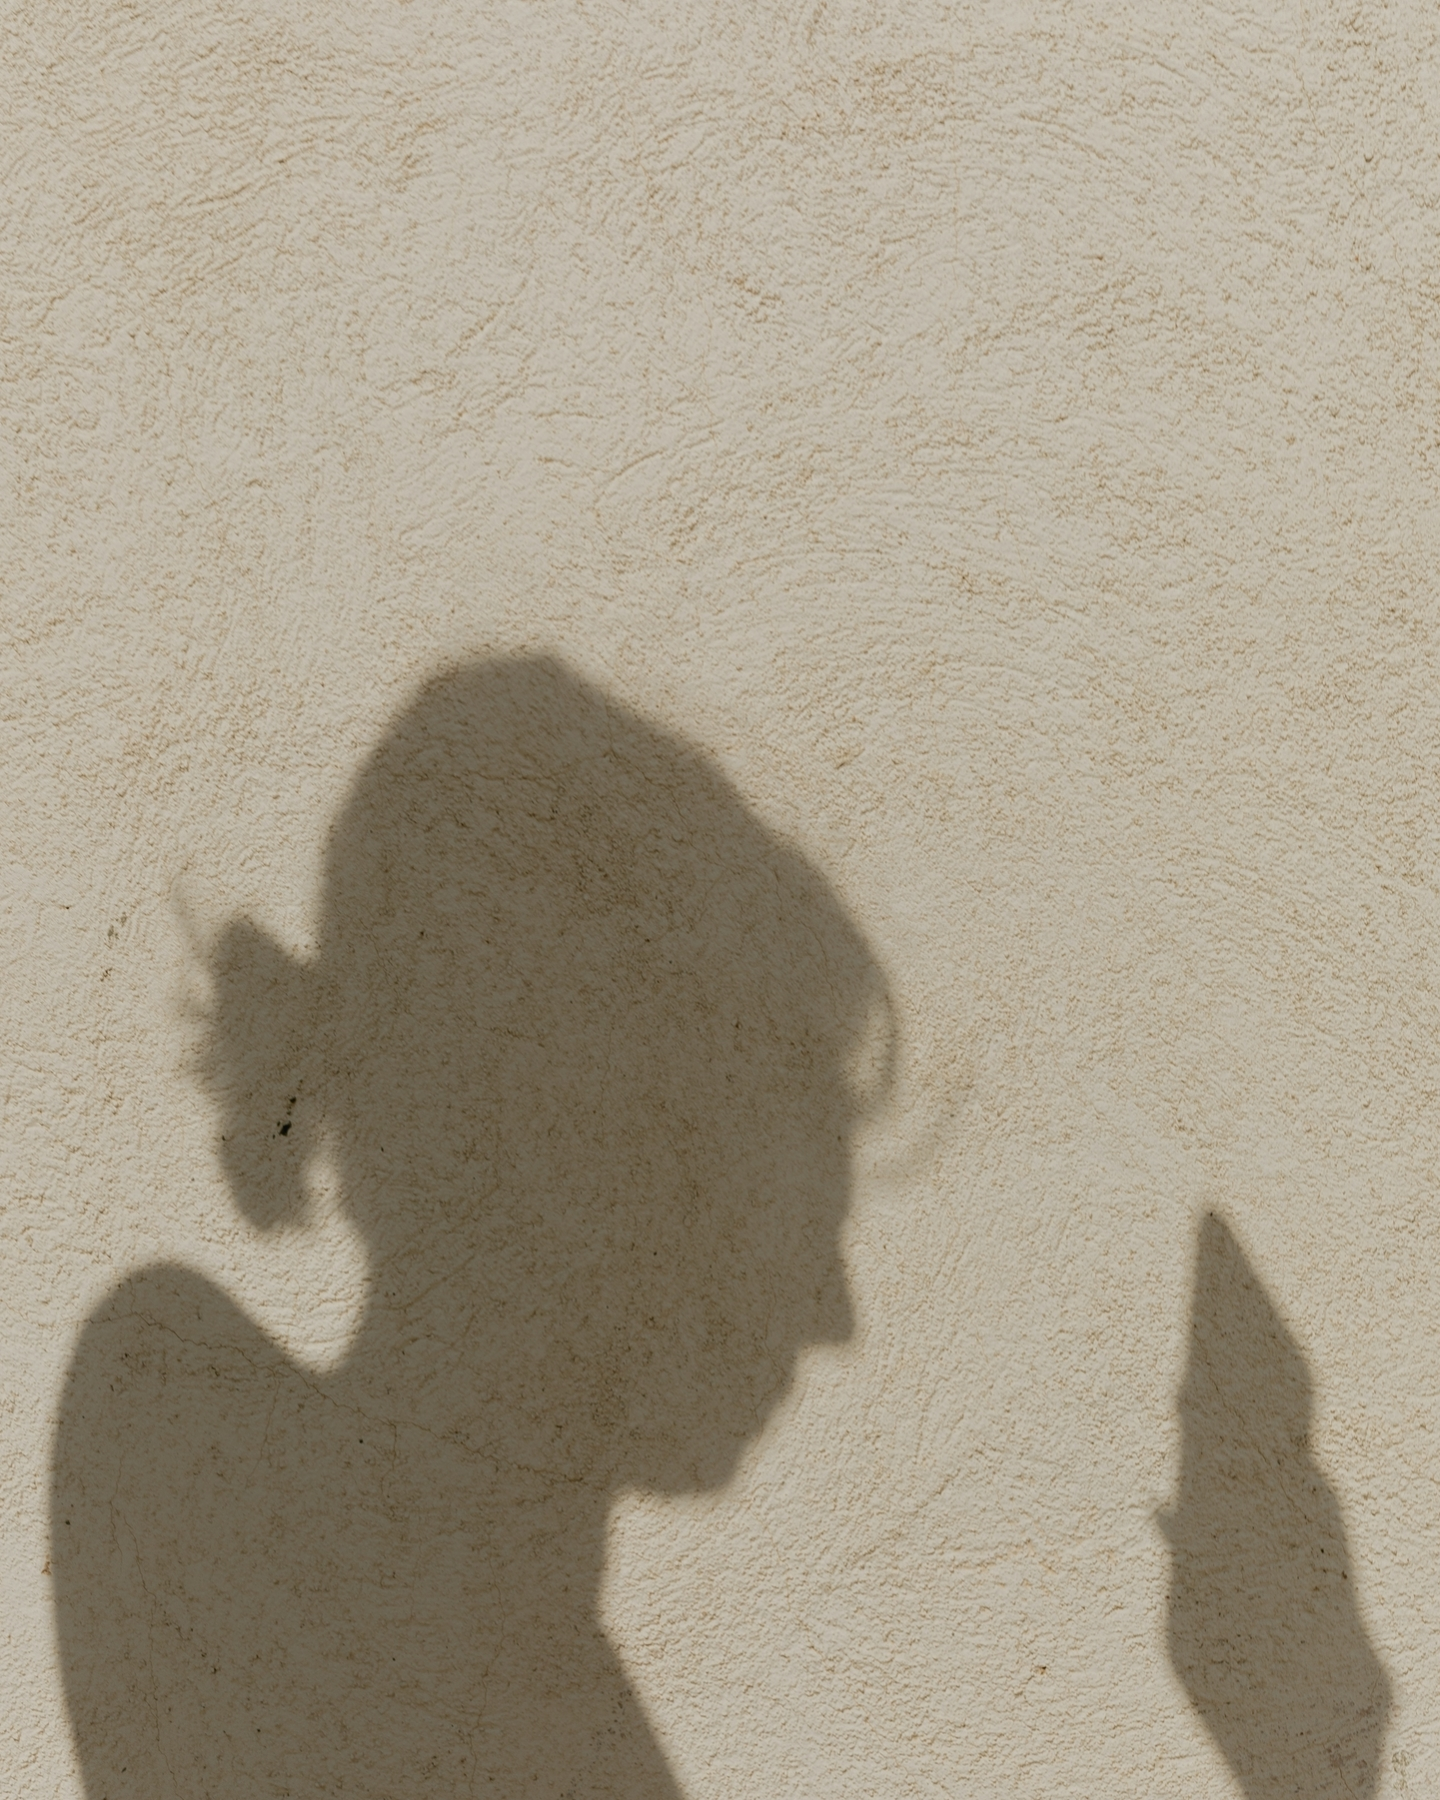 Contact Shadow Person on Phone